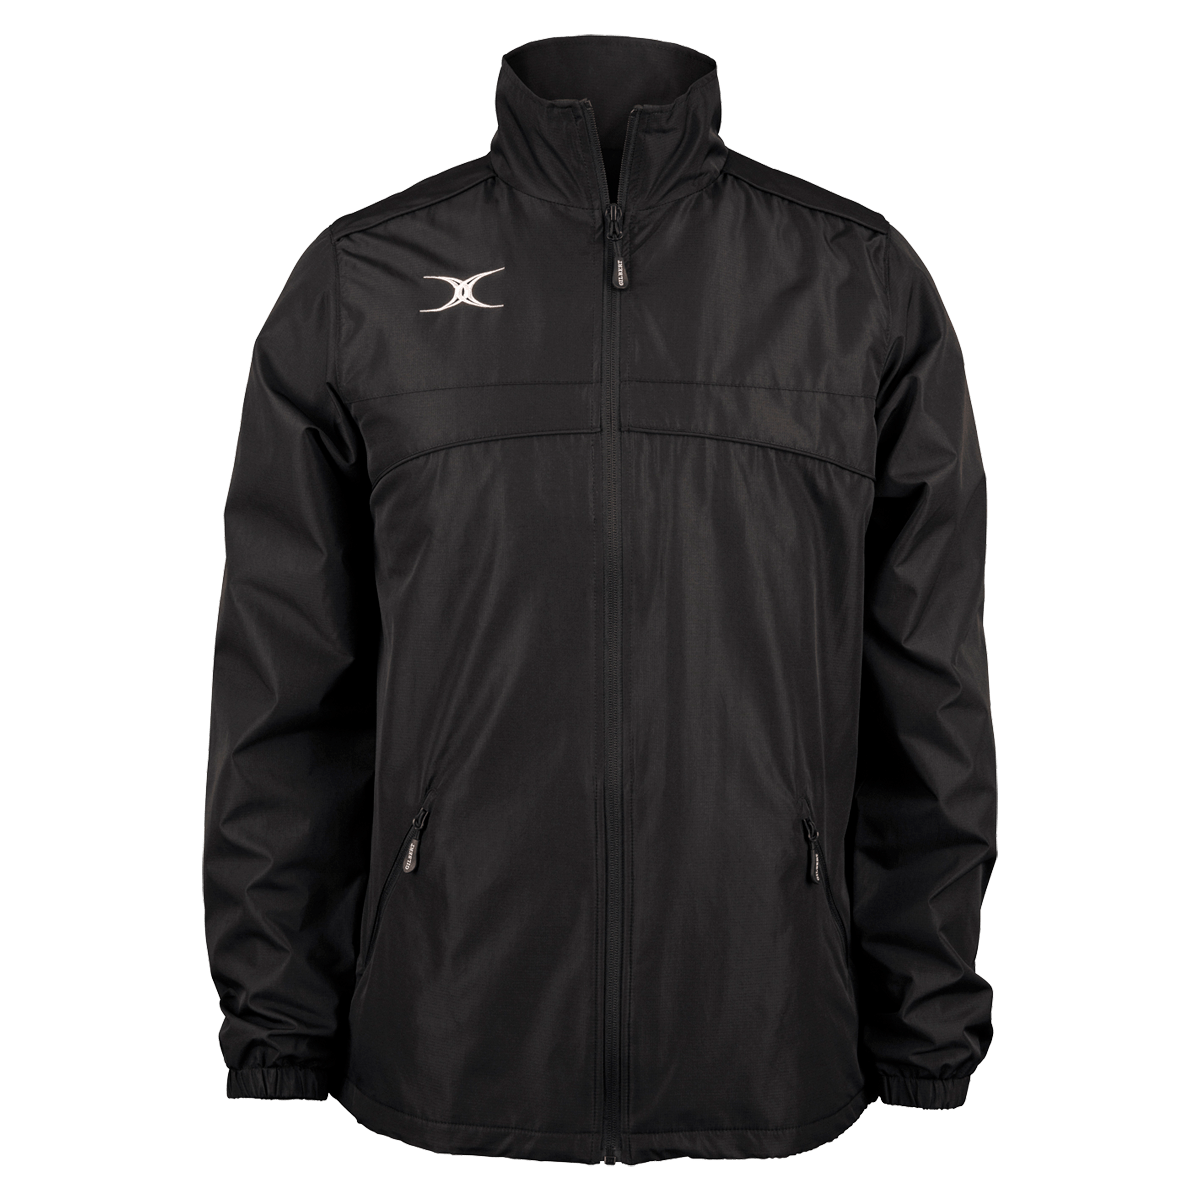 Gilbert Black Photon Full Zip Jacket